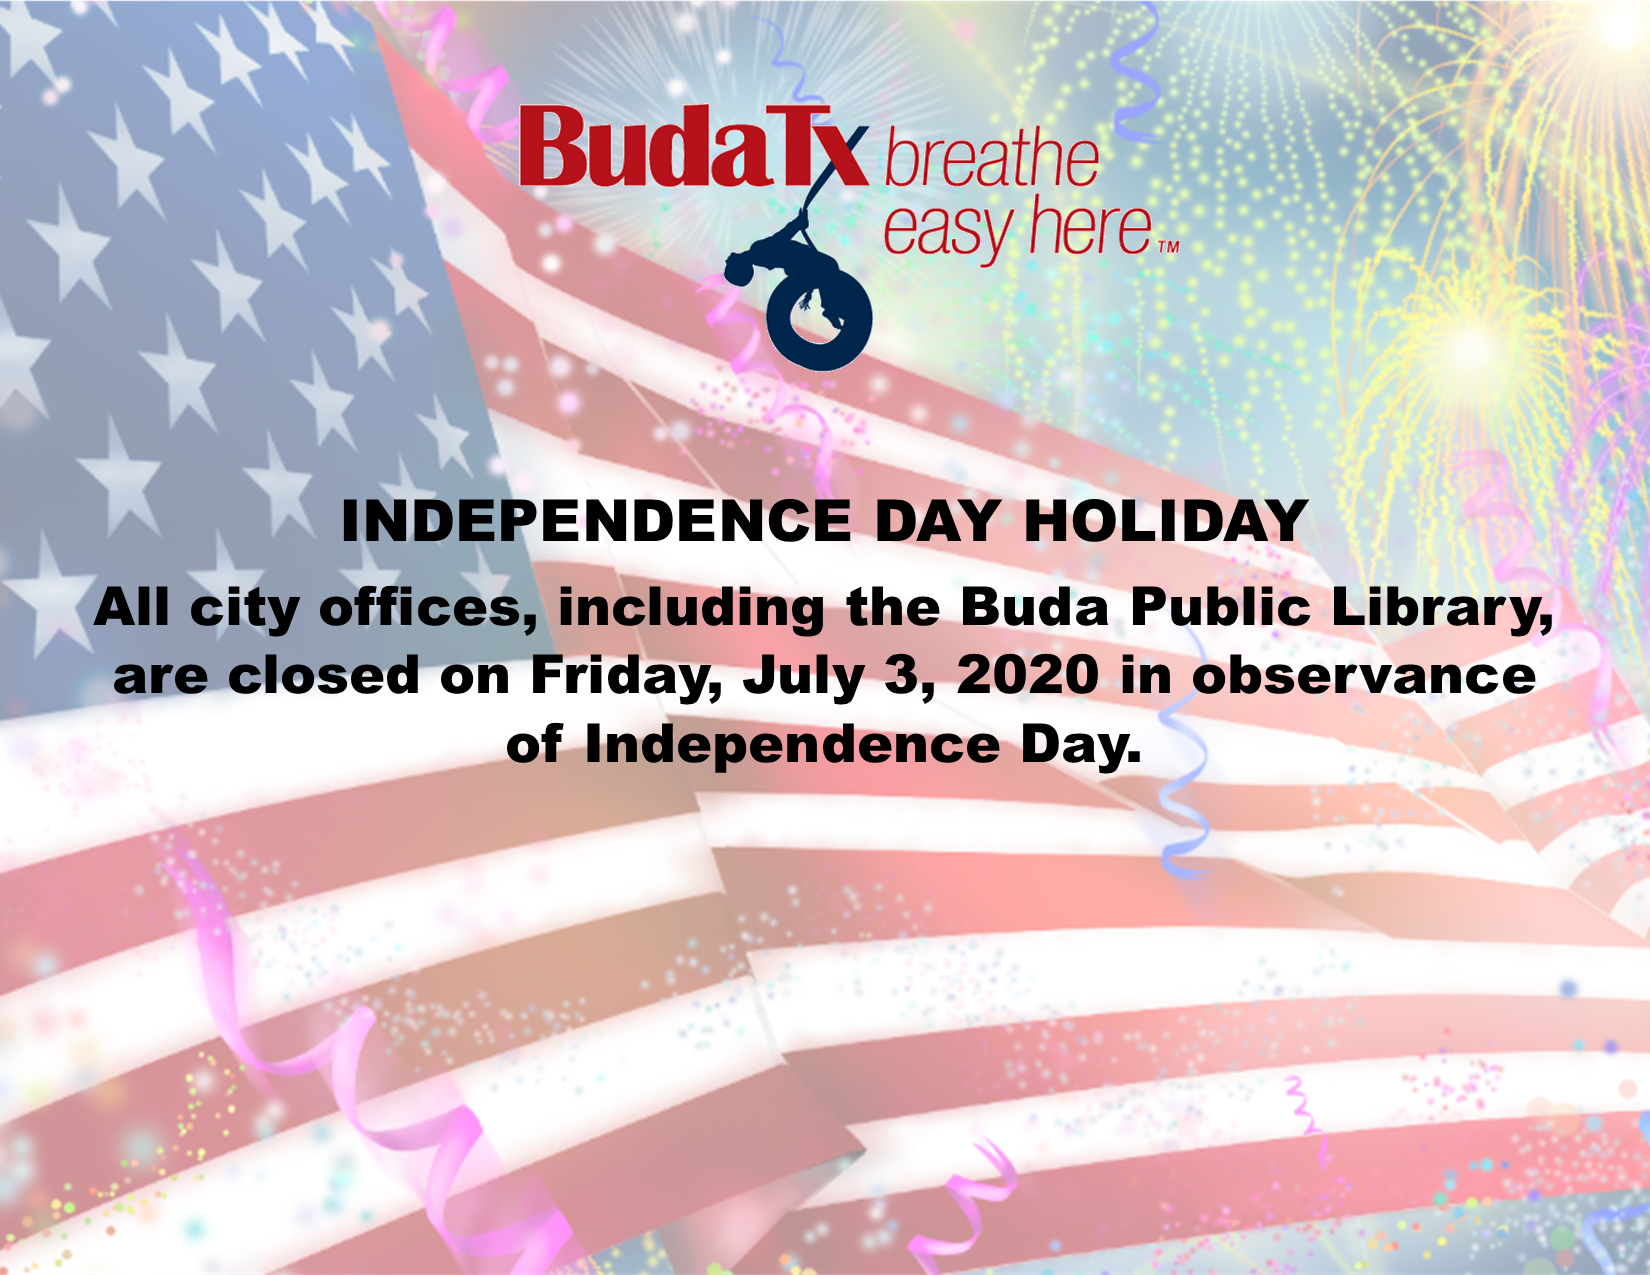 Independence Day Holiday 2020